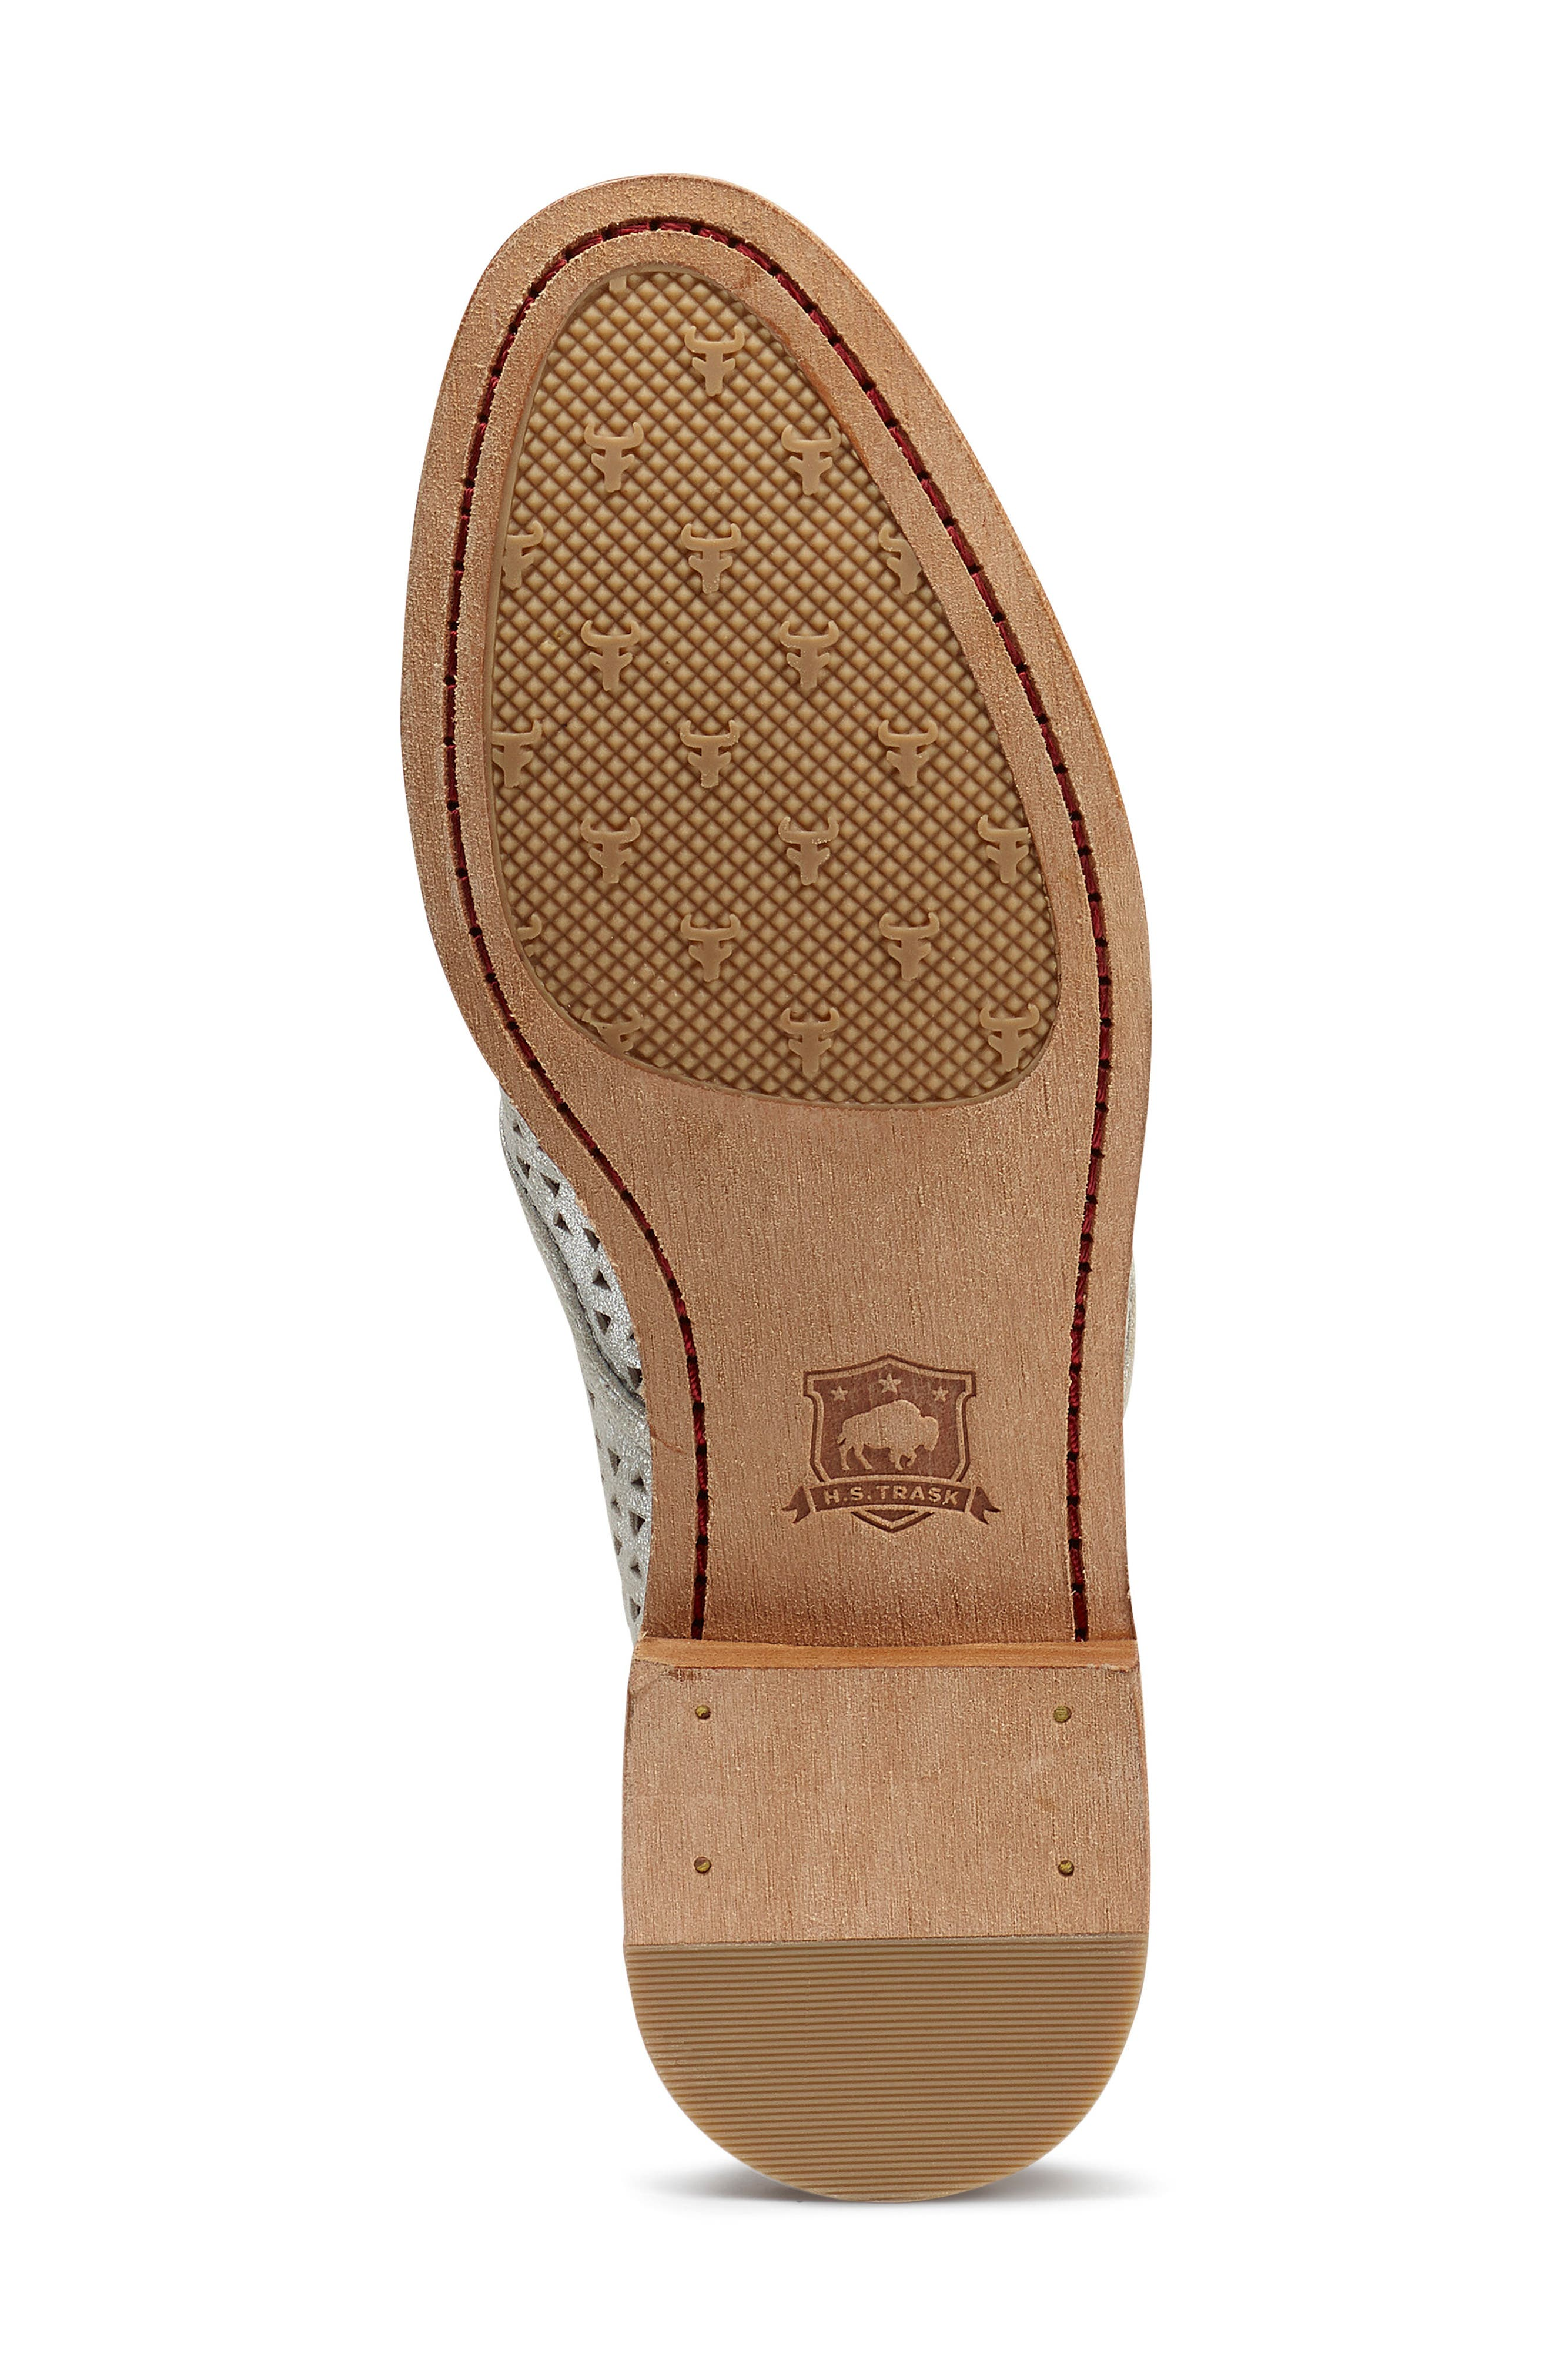 TRASK, Ali Perforated Loafer, Alternate thumbnail 6, color, IVORY METALLIC SUEDE